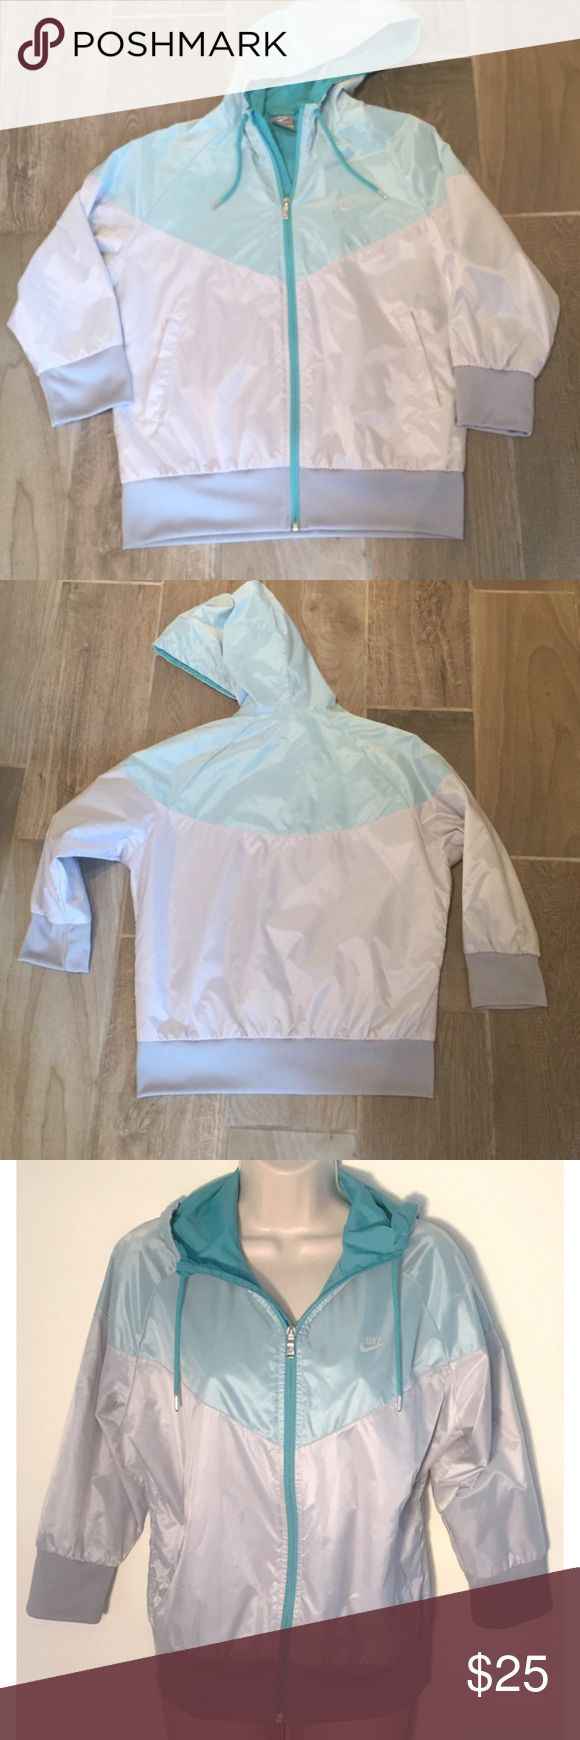 """❣BOGO 1/2 off❣🆕Nike youth lightweight jacket NWOT, flawless. Silvery gray & turquoise blue colors with silvertone hardware. Light, windbreaker-type material. Fully lined. 2 front pockets. Large. Could also fit a women's XS if you have shorter arms or want a cropped sleeve look. Approx 24"""" long, 21"""" flat across chest, & 19"""" sleeves. ❣Ask me how to BOGO HALF price! Nike Jackets & Coats"""